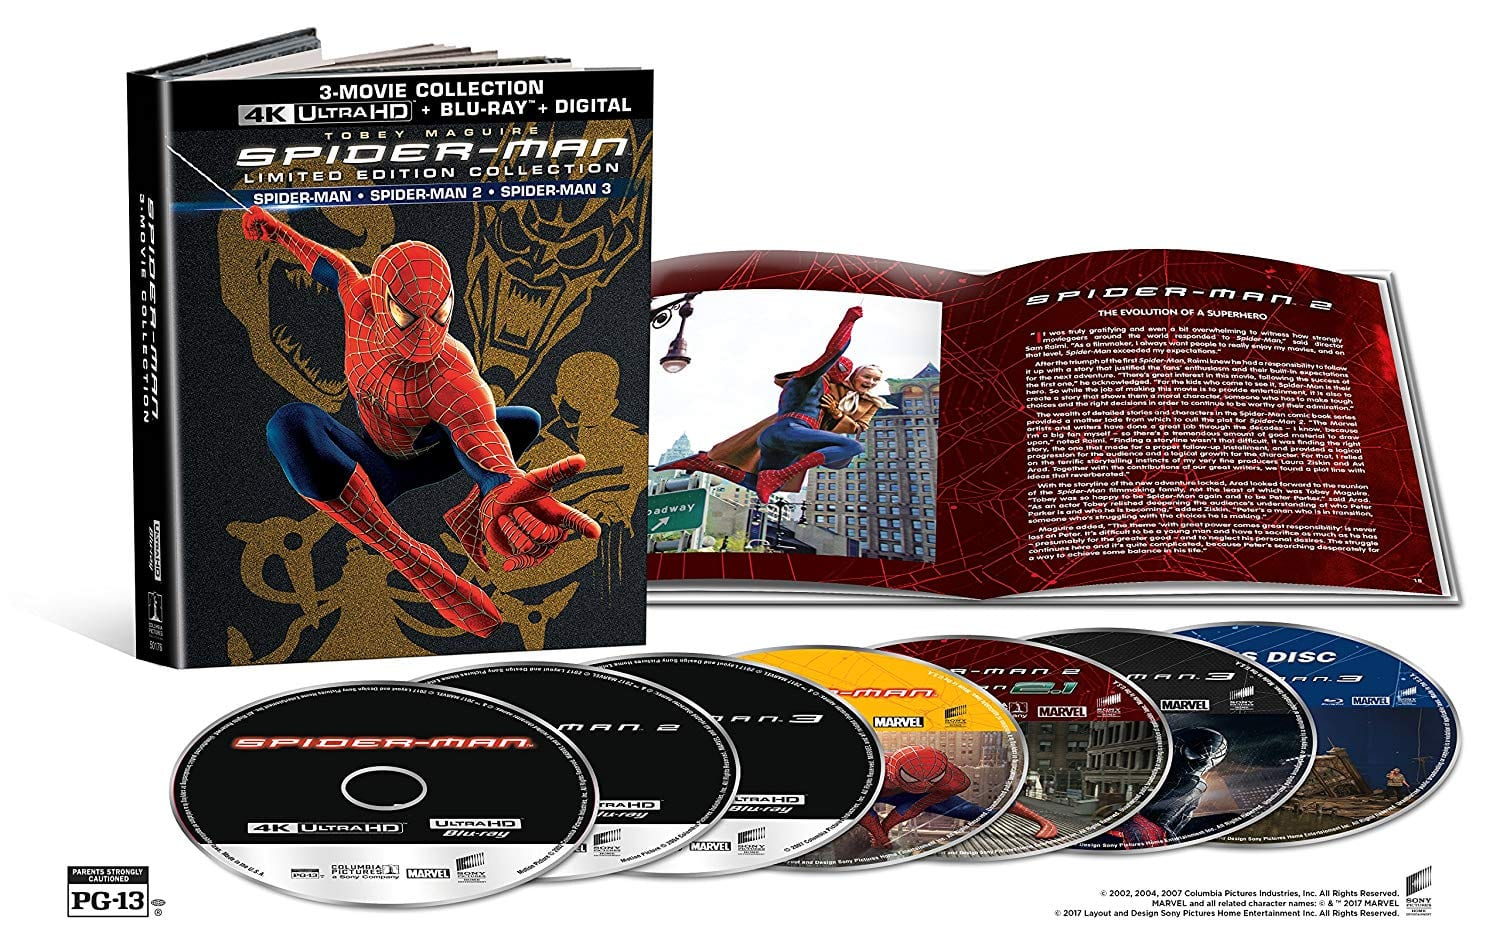 Spider-Man 3-Movie Limited Edition Collection (4K UHD + Blu-Ray + Digital) $34.92 + Free Shipping via Amazon